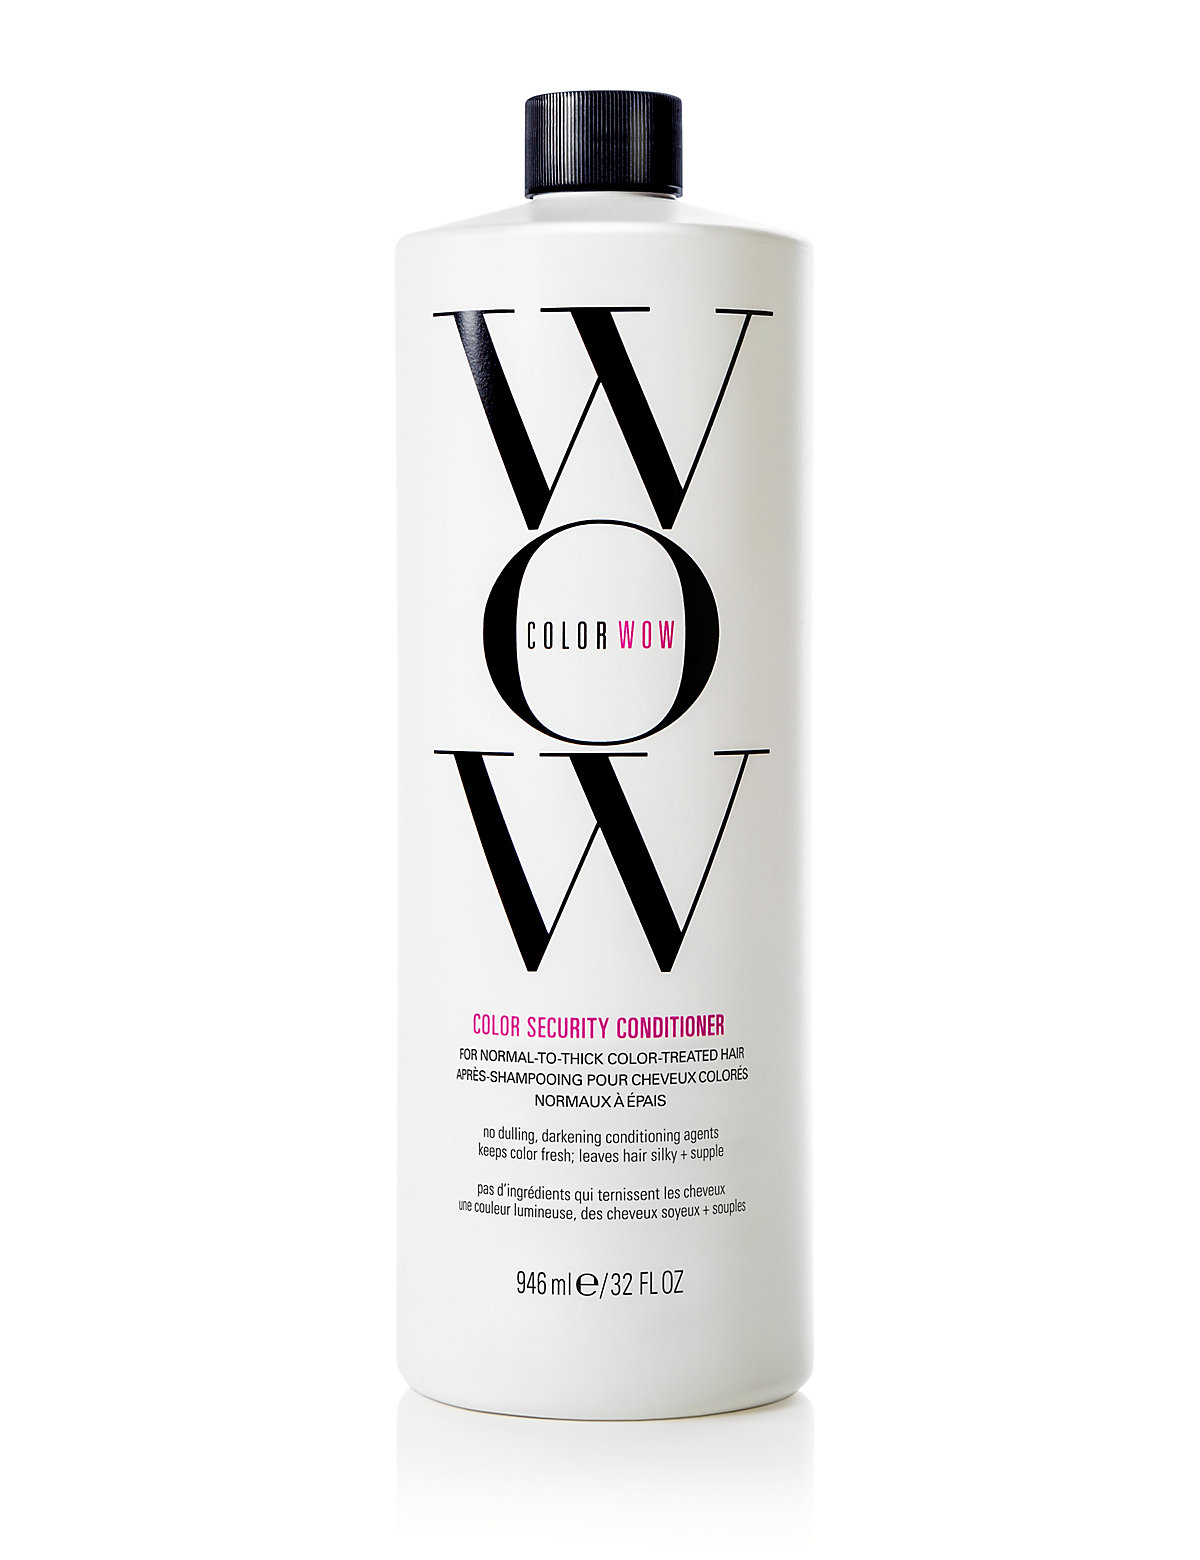 COLOR WOW 1 Litre Large Security Conditioner - *Save 27% per ml